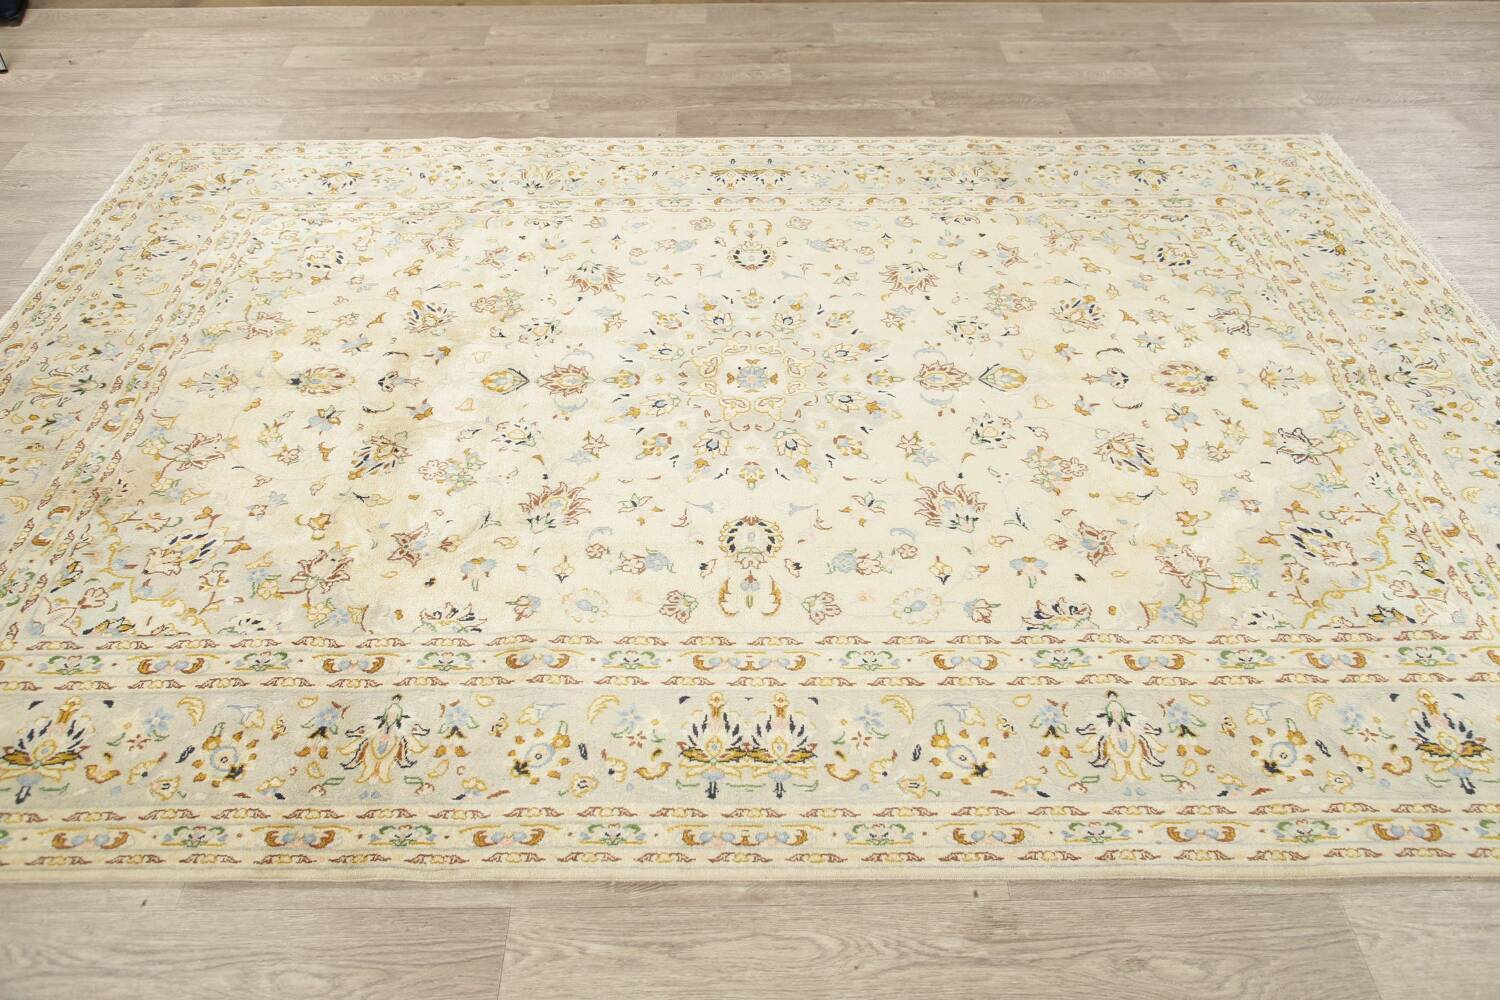 Floral Kashan Persian Area Rug 6x10 image 16